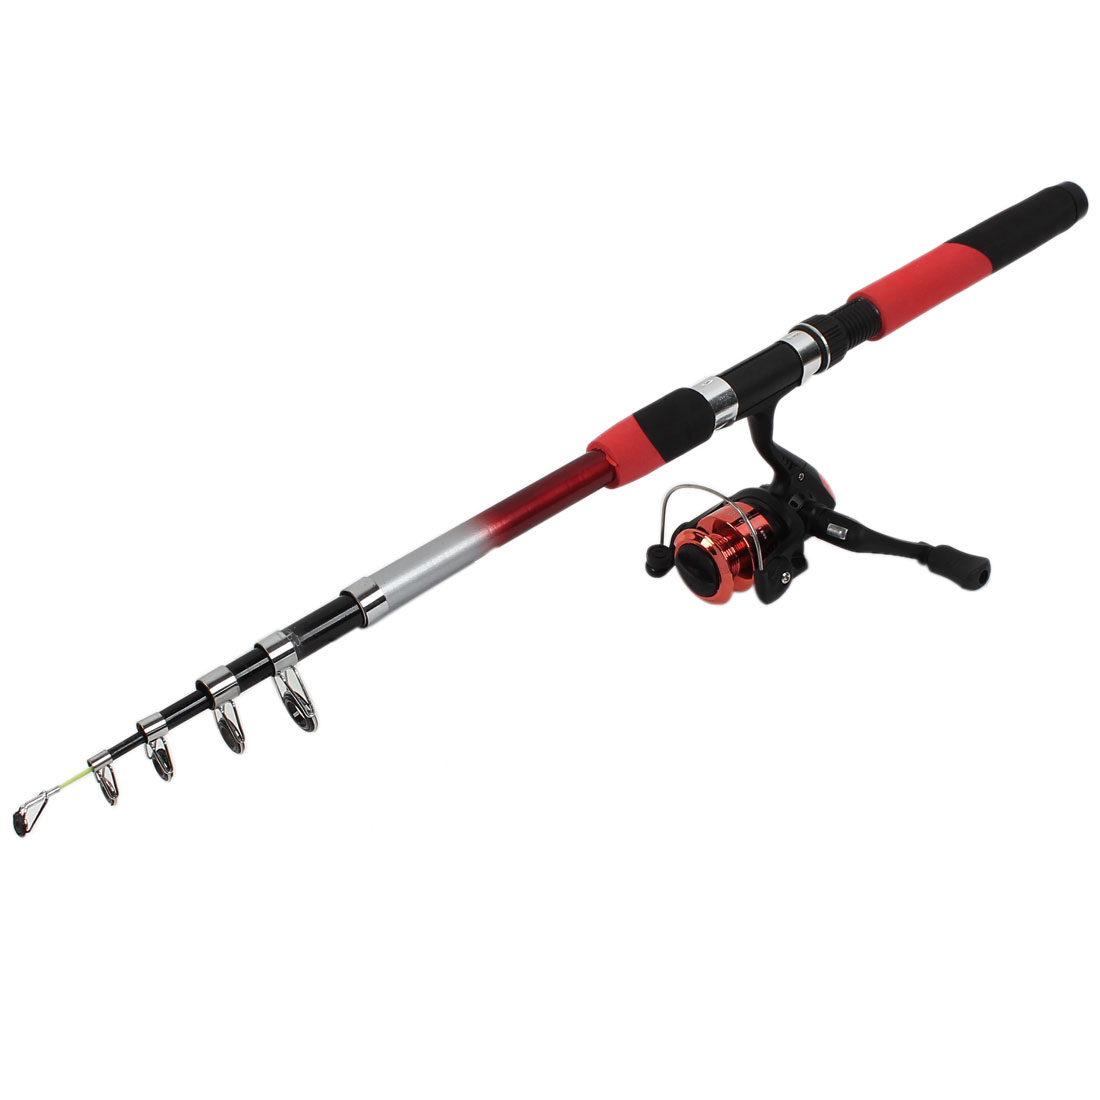 Telescopic 2.7M Long 6 Sections Fishing Rod Spinning Reel Fish Tackle Set